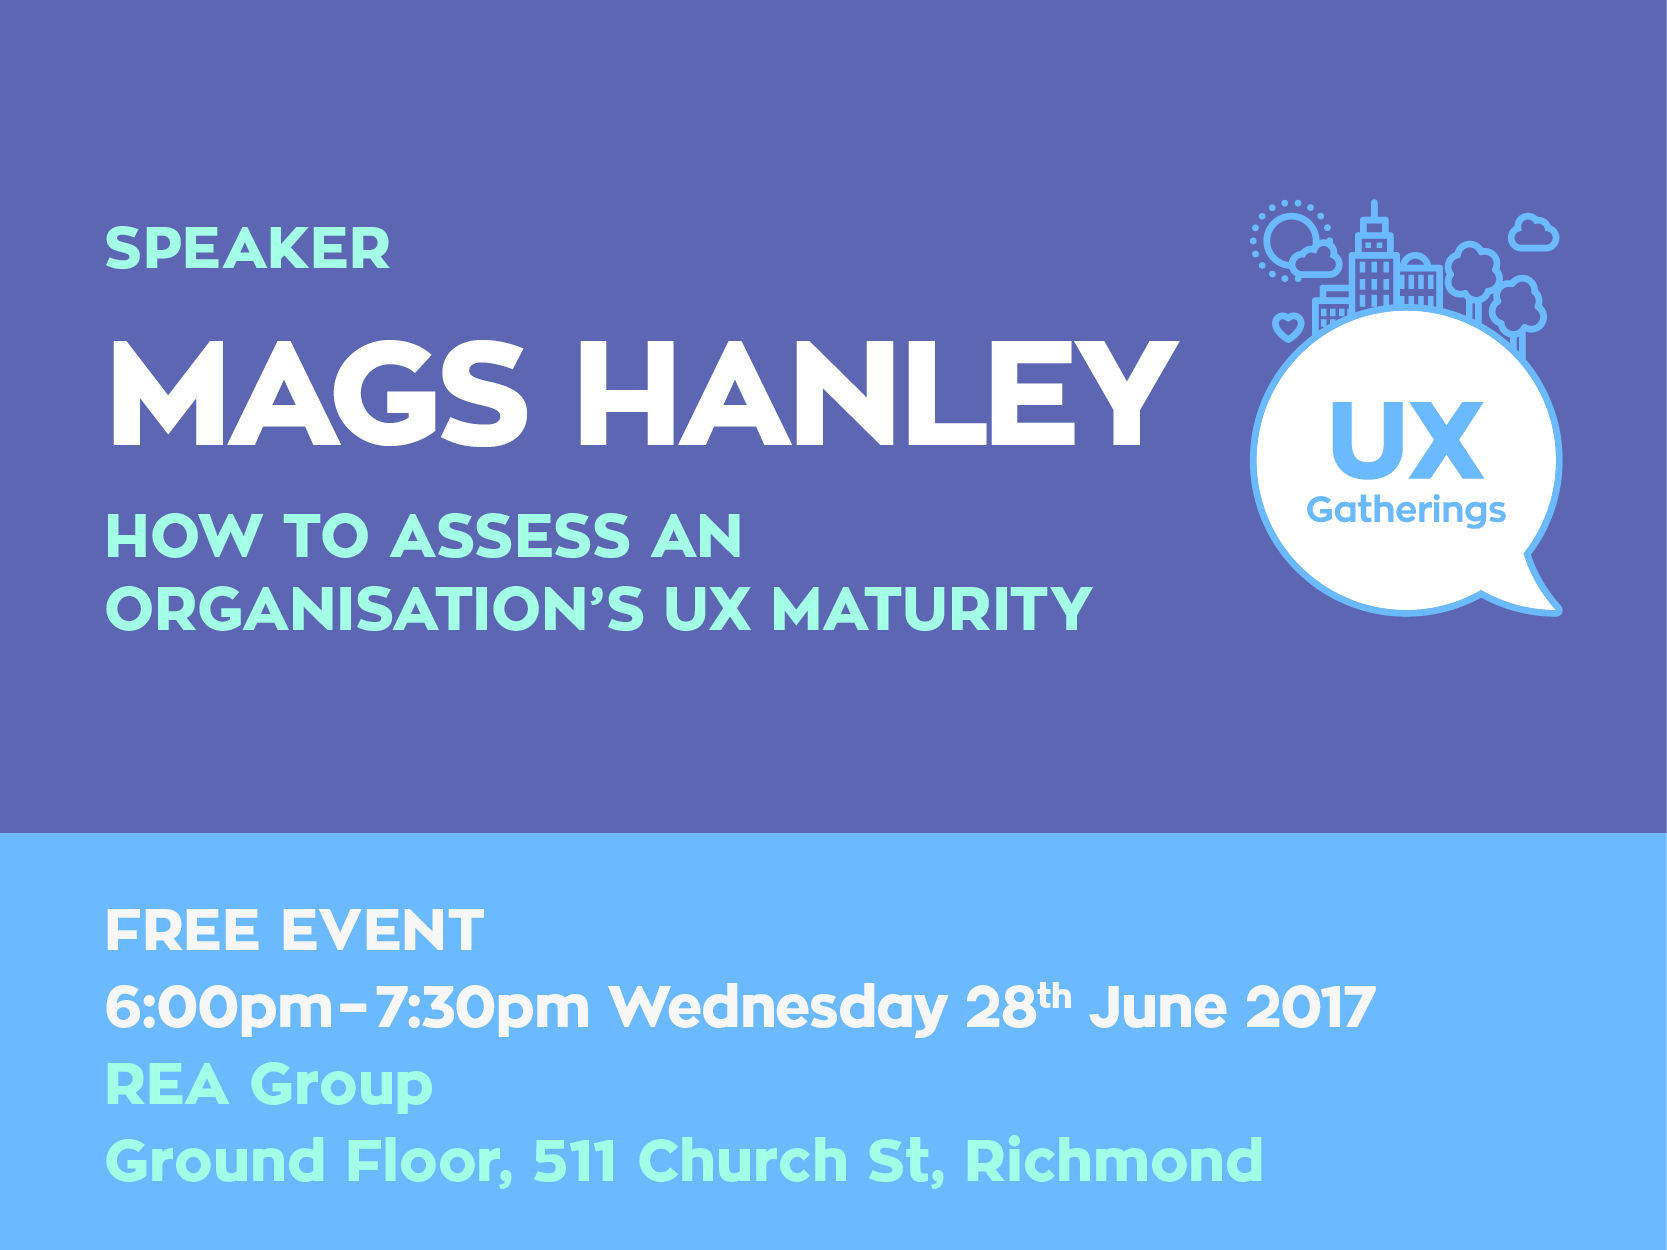 Event: How to assess an organisation's UX maturity, a talk by Mags Hanley for UX Gatherings — a meetup for the Melbourne UX community by Rohan Irvine and Renée Carmody. uxgatherings.com